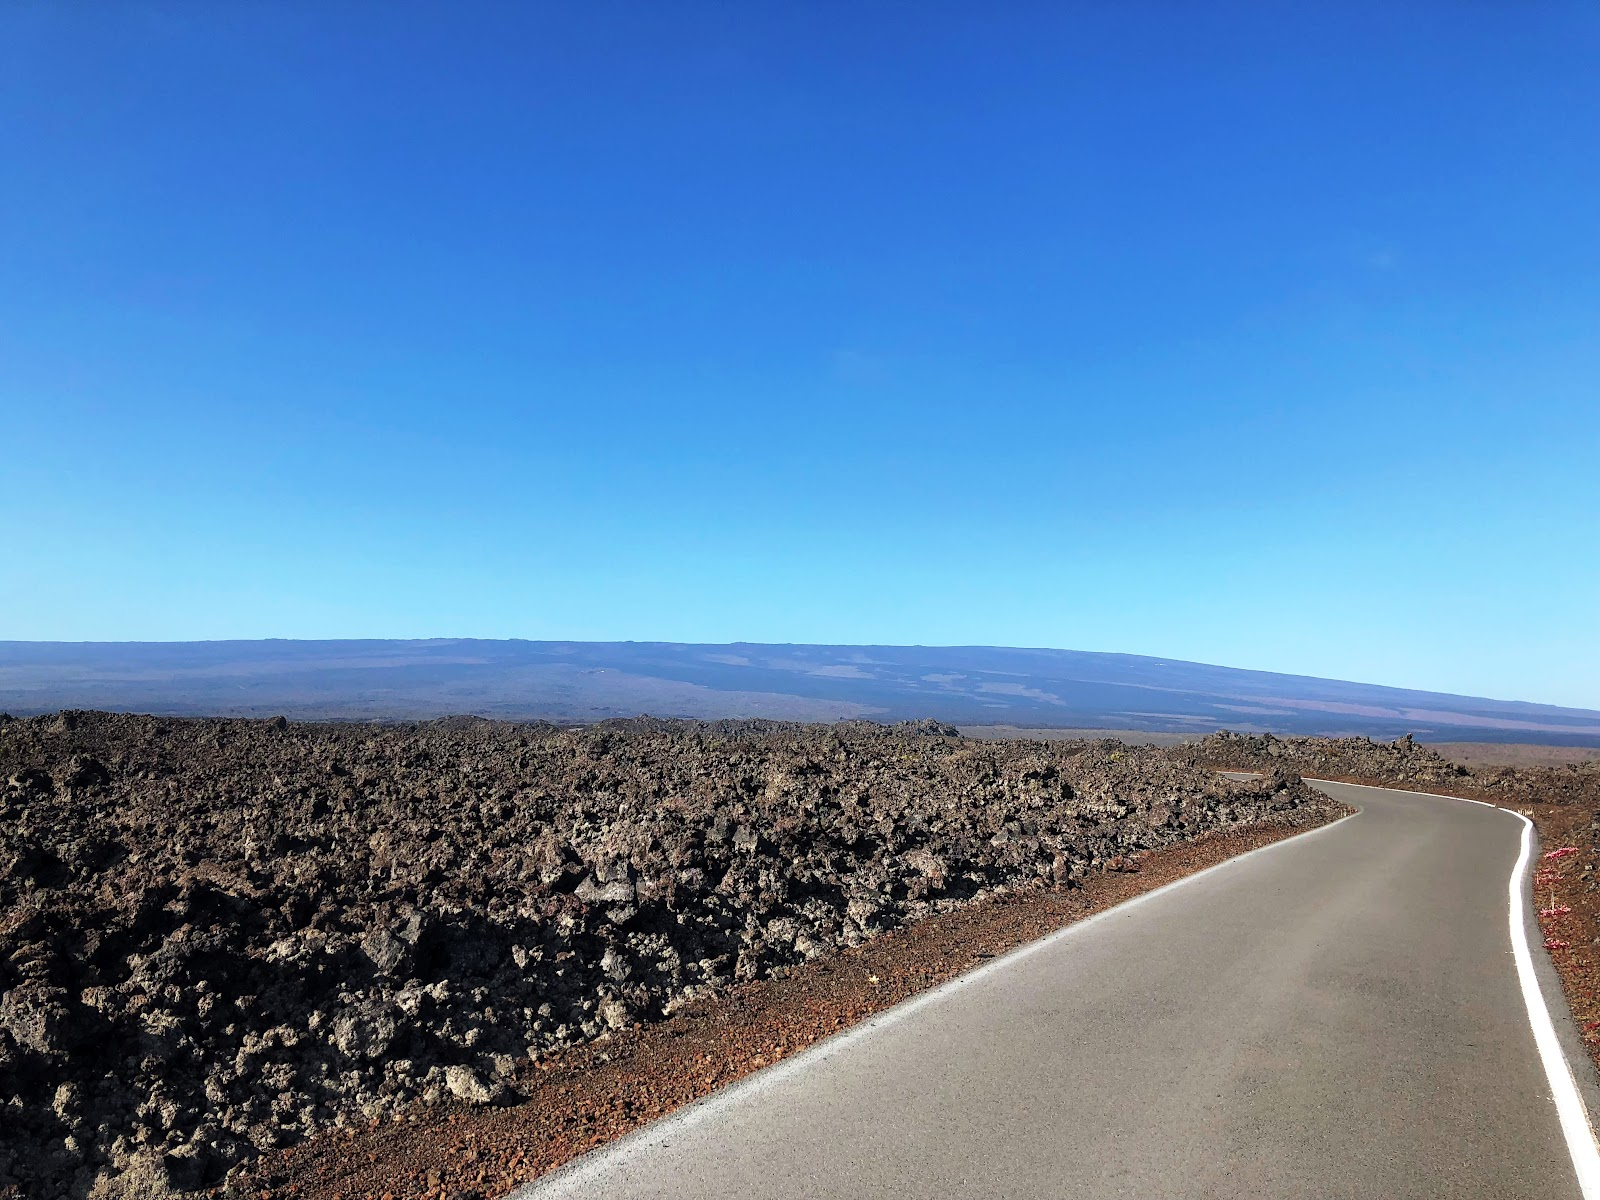 View of Mauna Loa shield volcano from distance